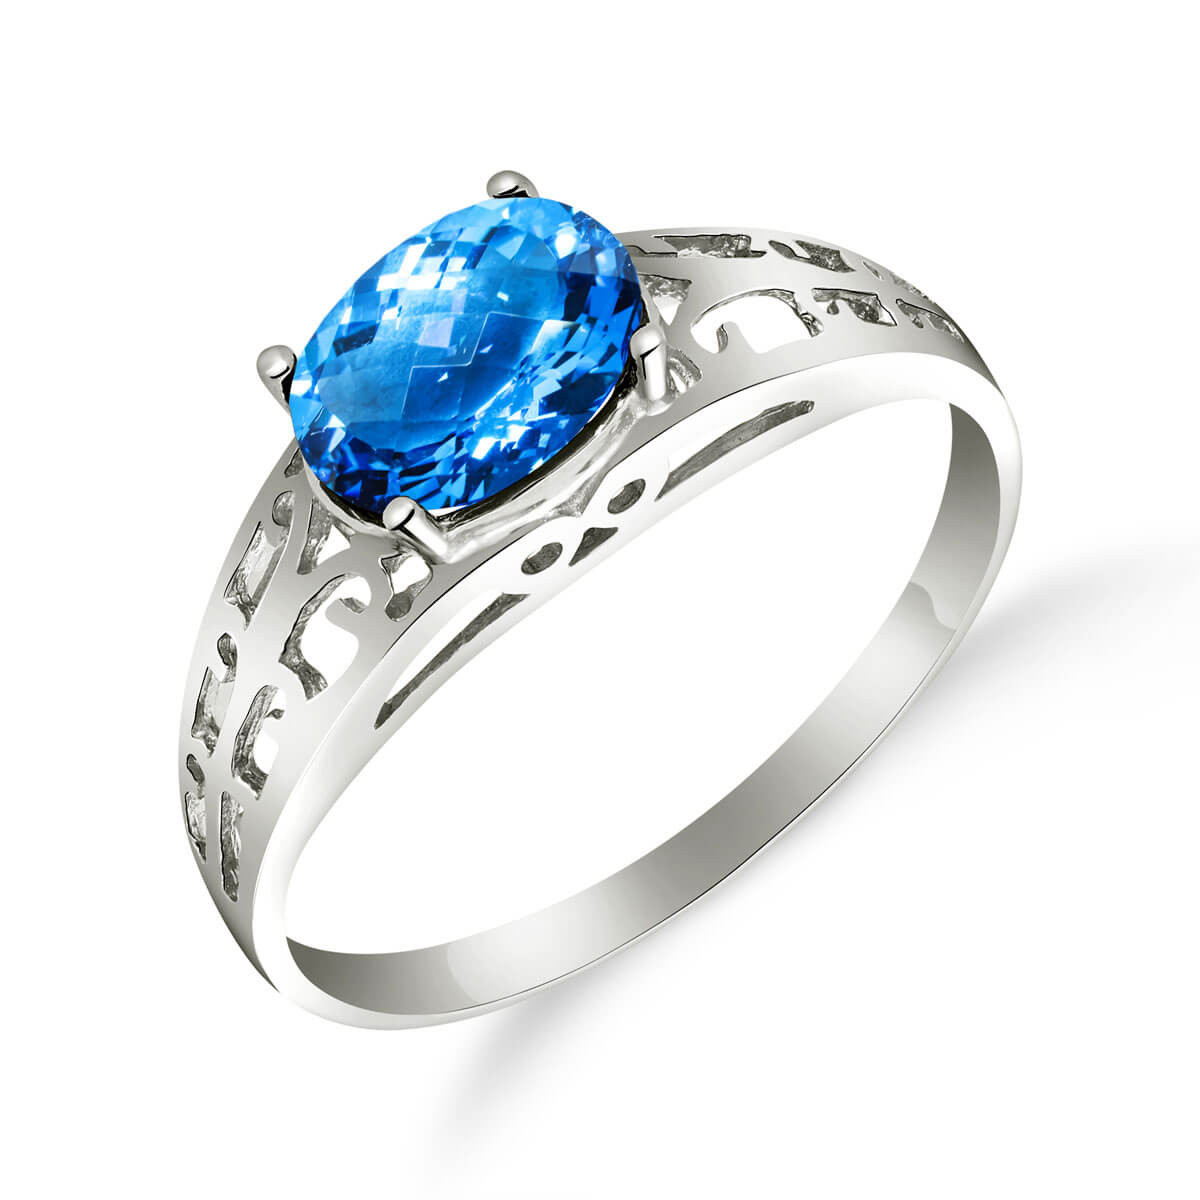 Blue Topaz Catalan Filigree Ring 1.15 ct in Sterling Silver